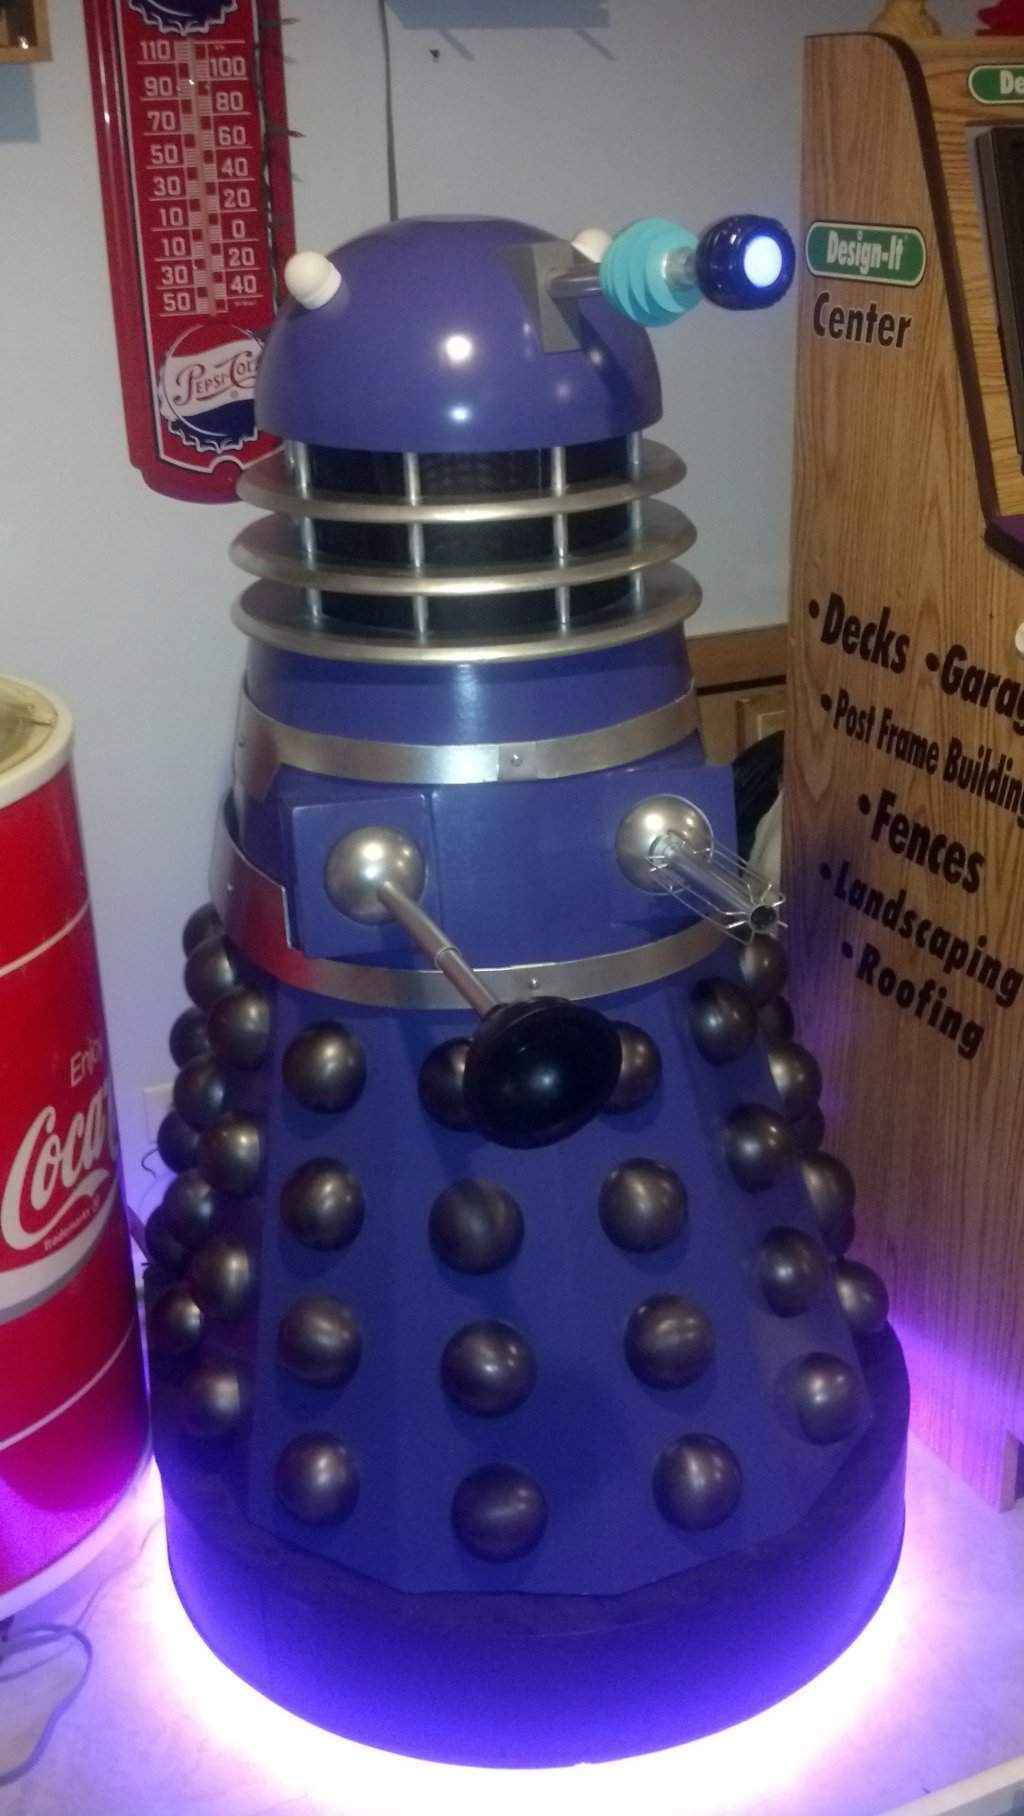 Nigel The Purple Dalek Building Nigel